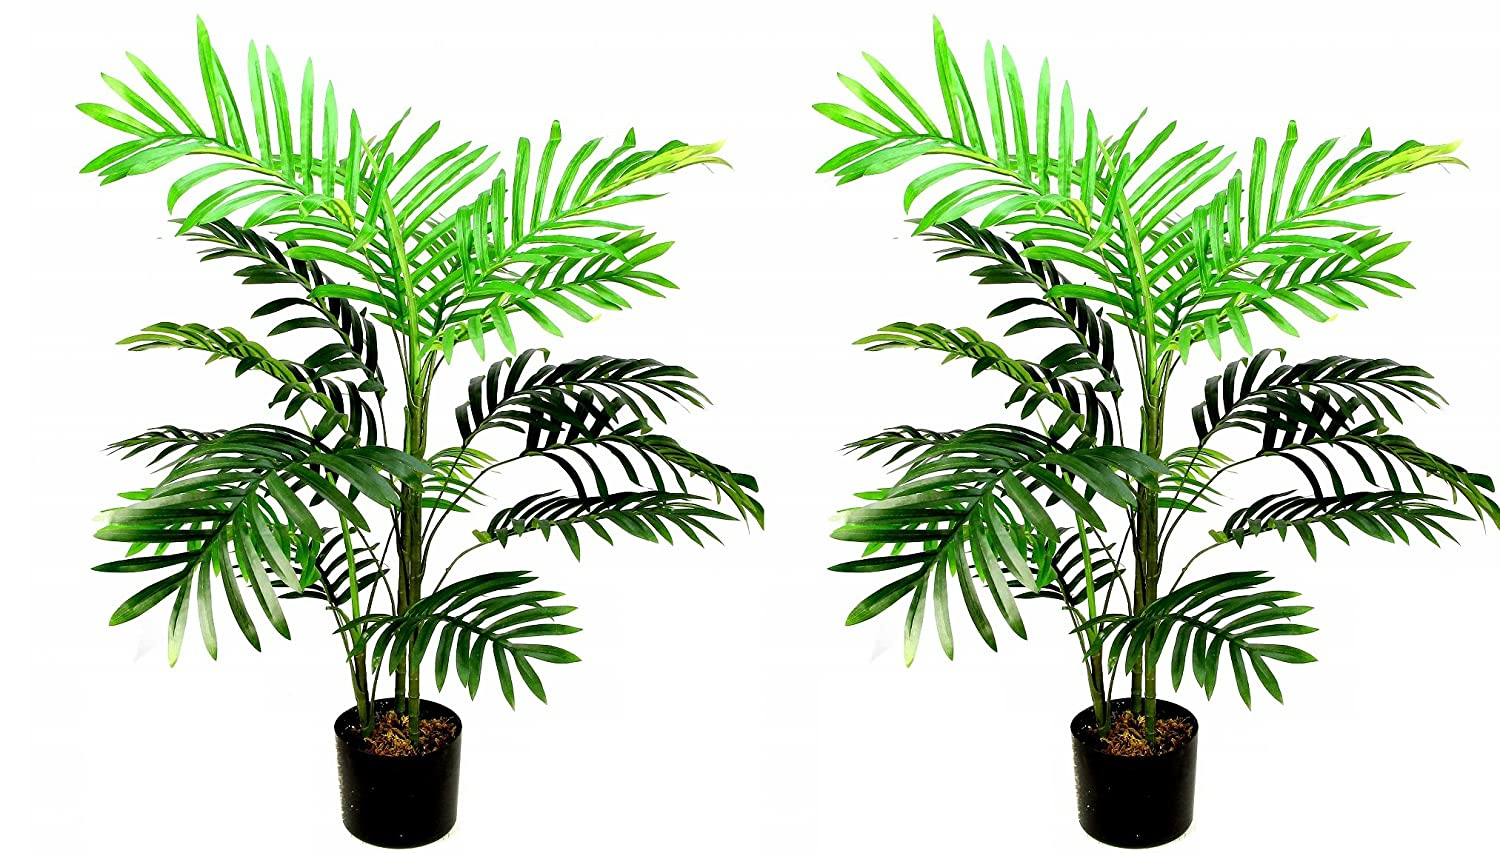 Admired By Nature 3 Artificial Paradise Palm Tree Plant Large Single Pack GTR4622-NATURAL